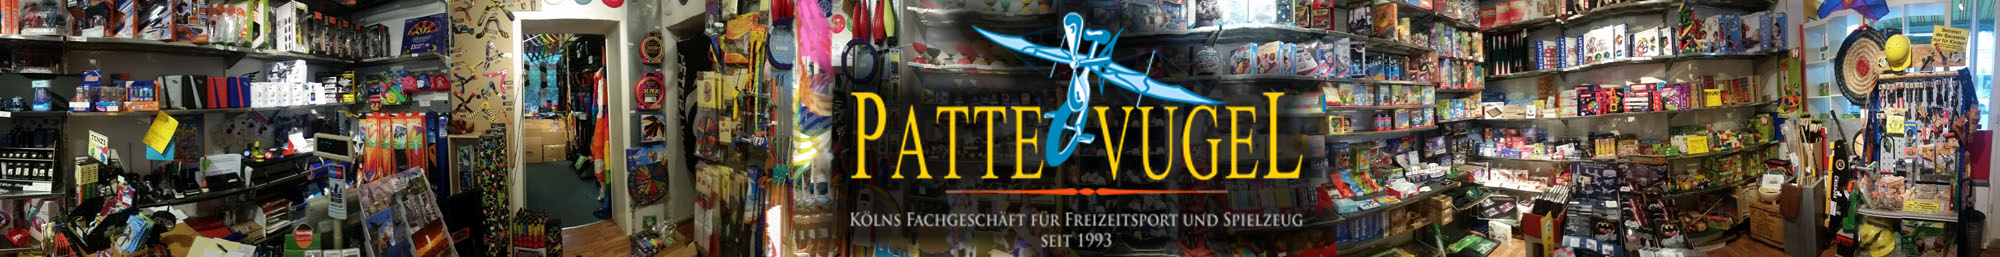 Pattevugel